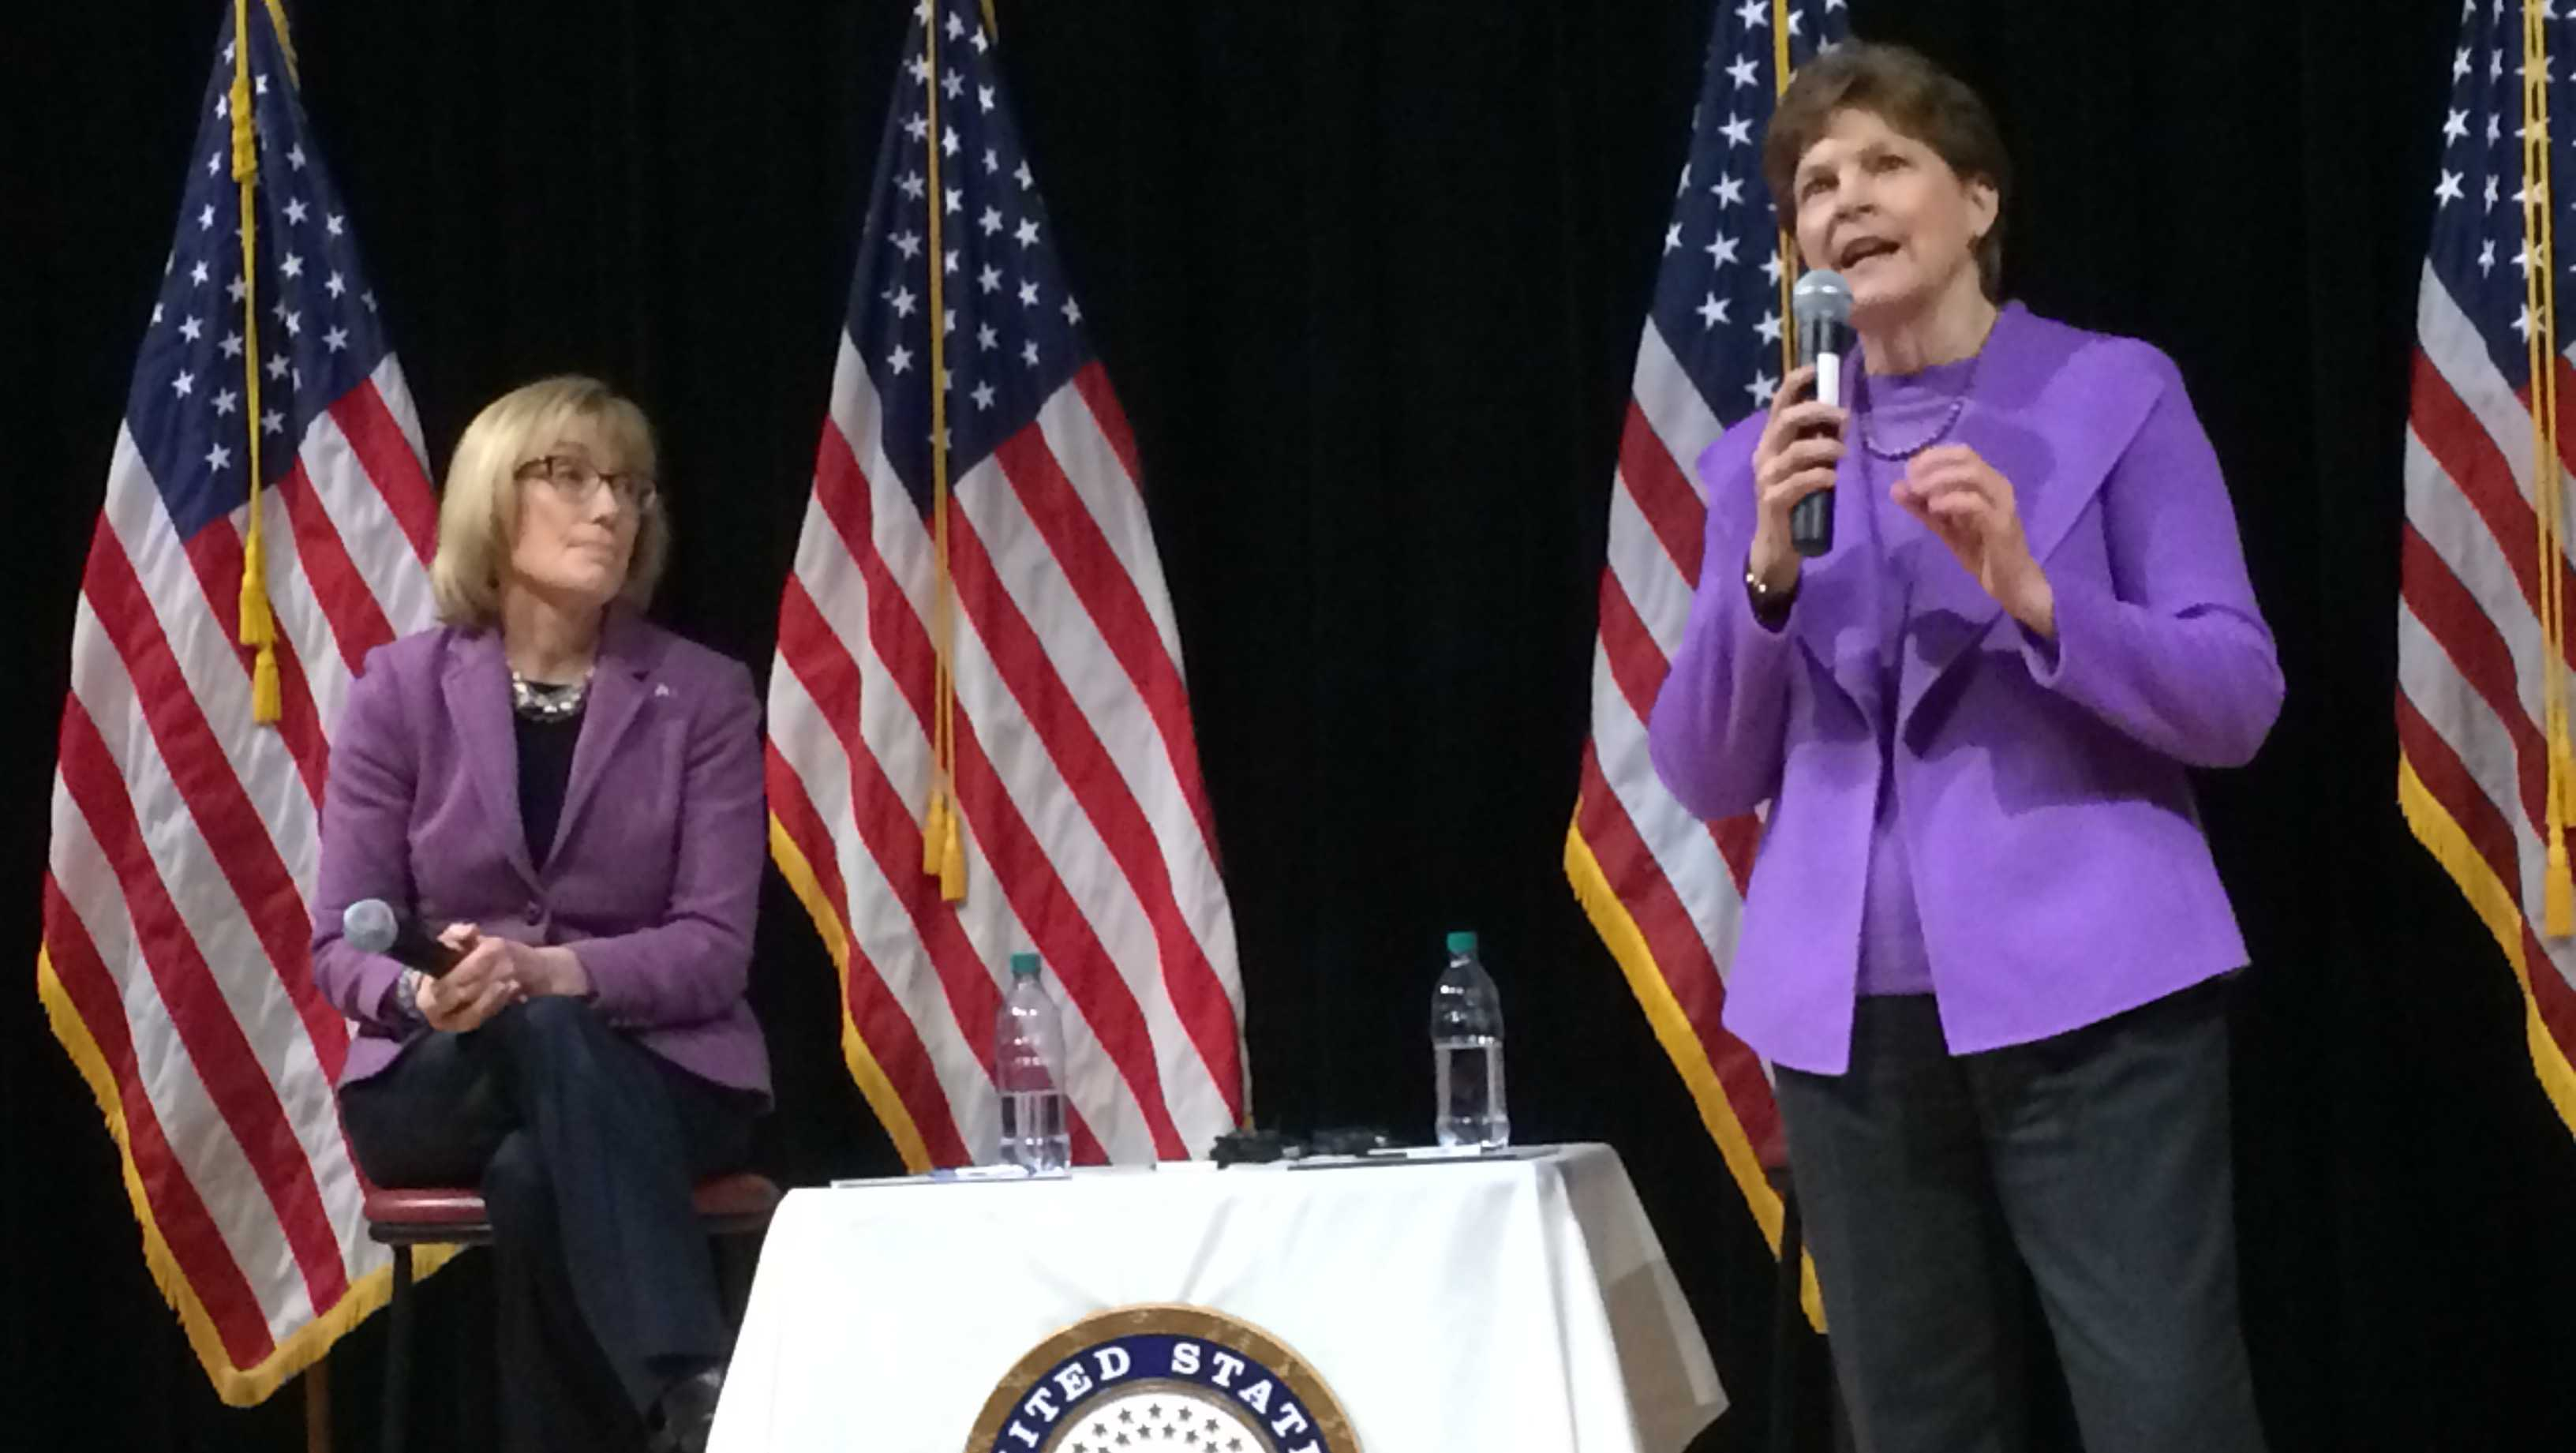 Sens. Maggie Hassan (left) and Jeanne Shaheen, seen at a February joint town hall in Concord, are among sponsors of a bill to streamline the Department of Veterans Affairs' disability claims appeals process